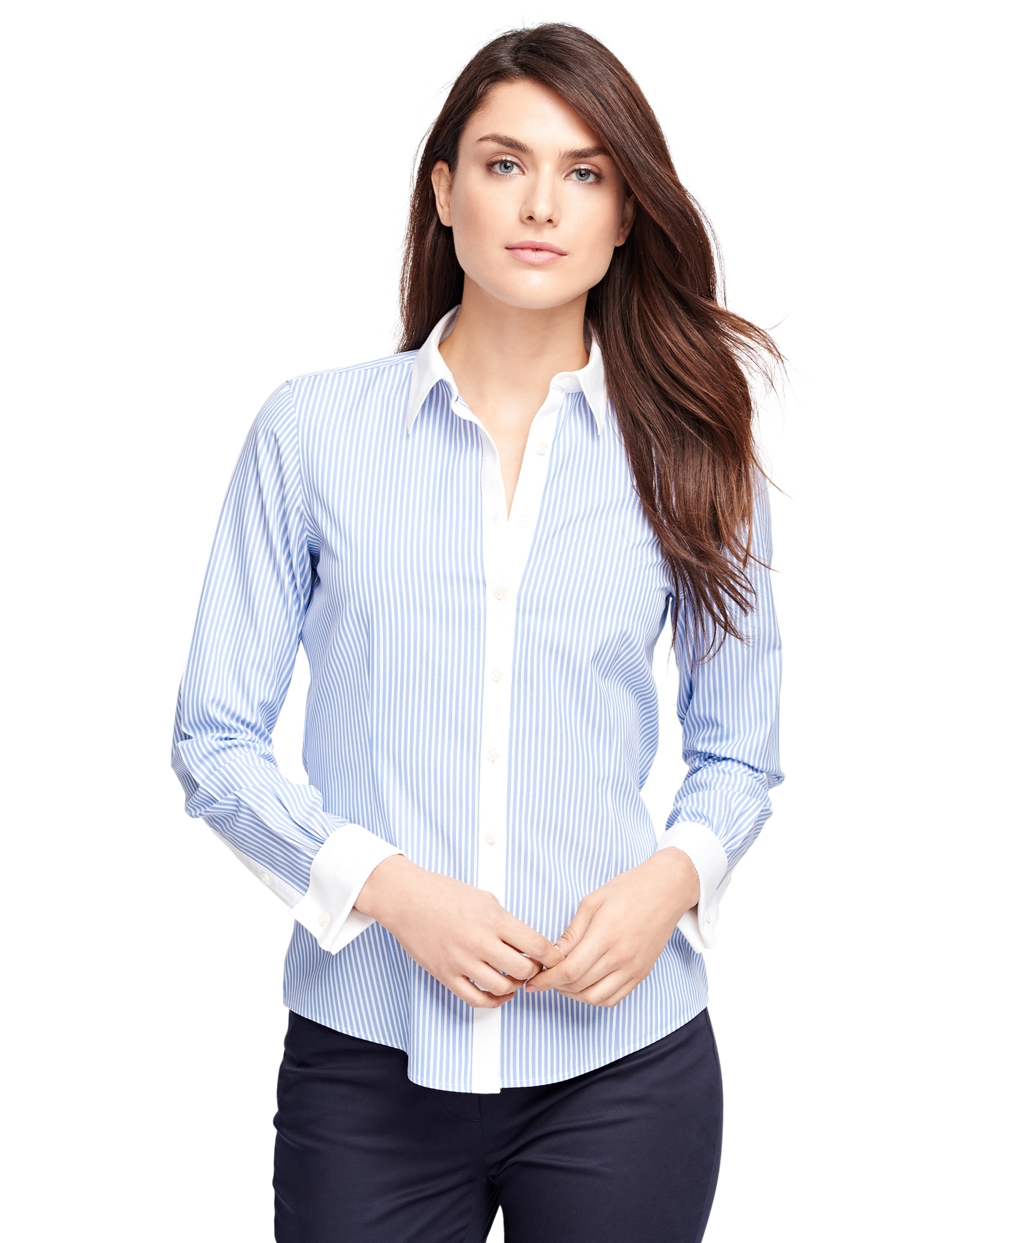 Lyst brooks brothers non iron tailored fit stripe dress for Tailored fit dress shirts